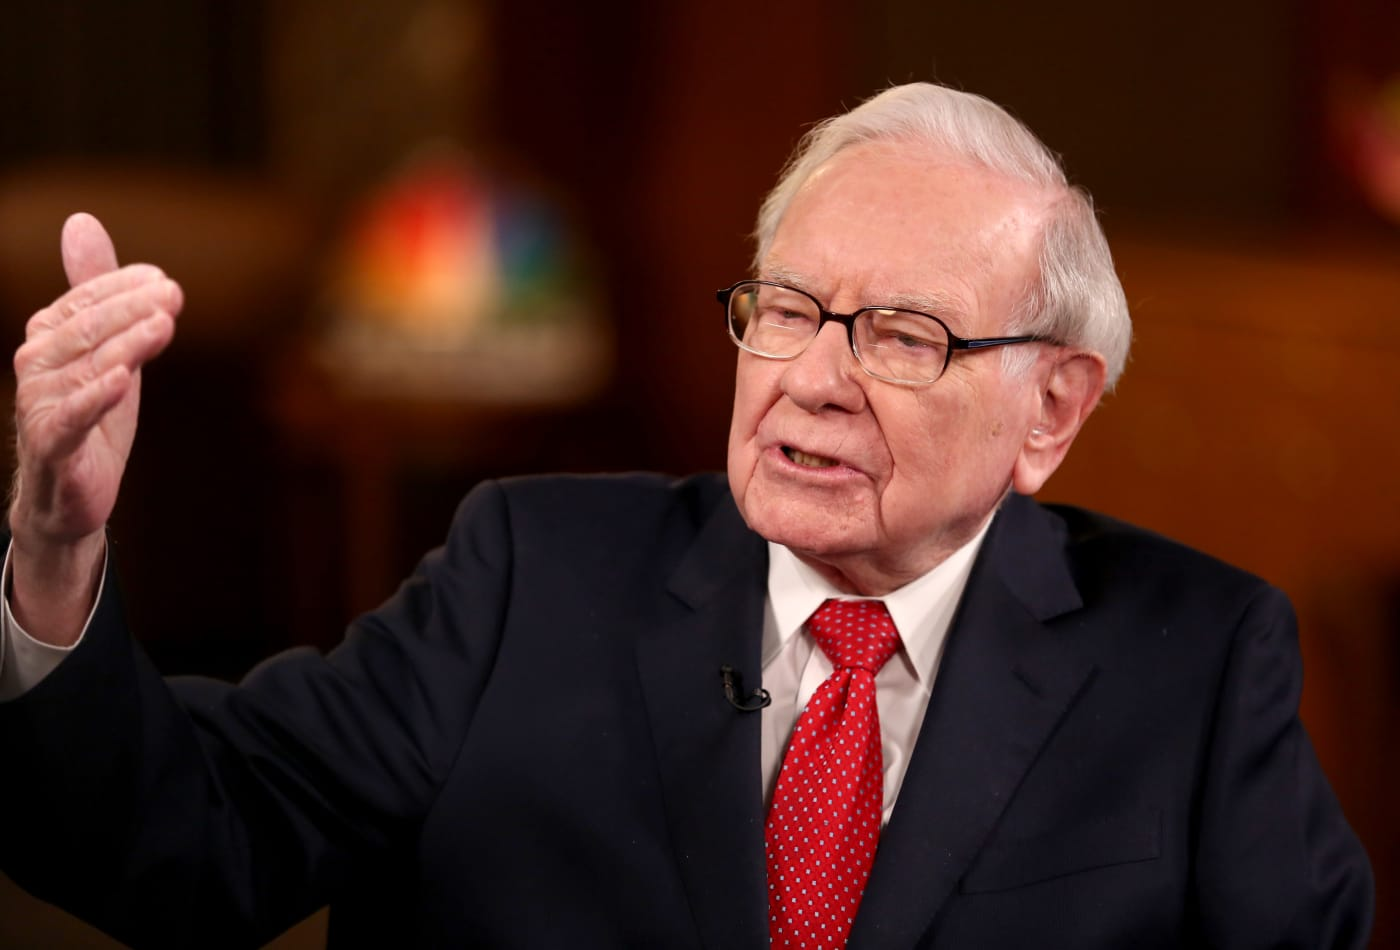 Warren Buffett: Cryptocurrency 'has no value' – 'I don't own any and never will'